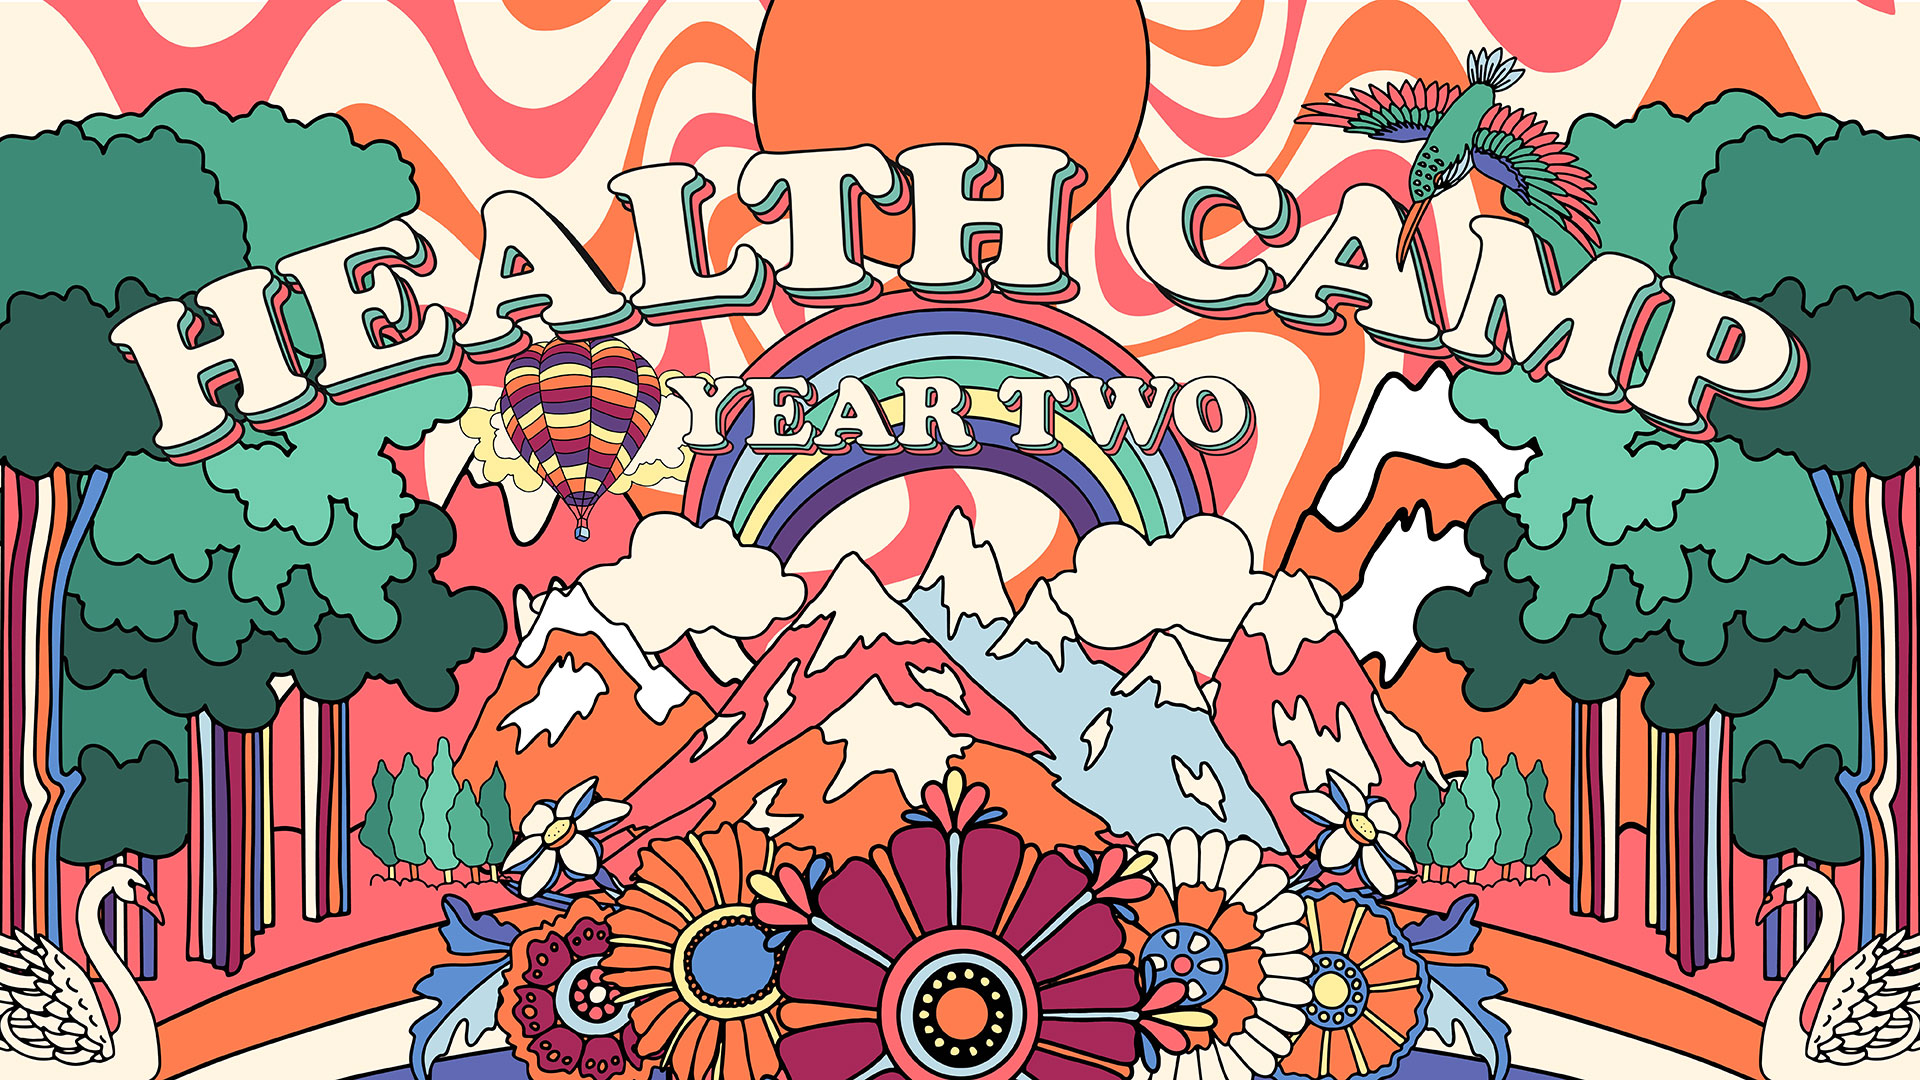 Series: Health Camp, Year Two